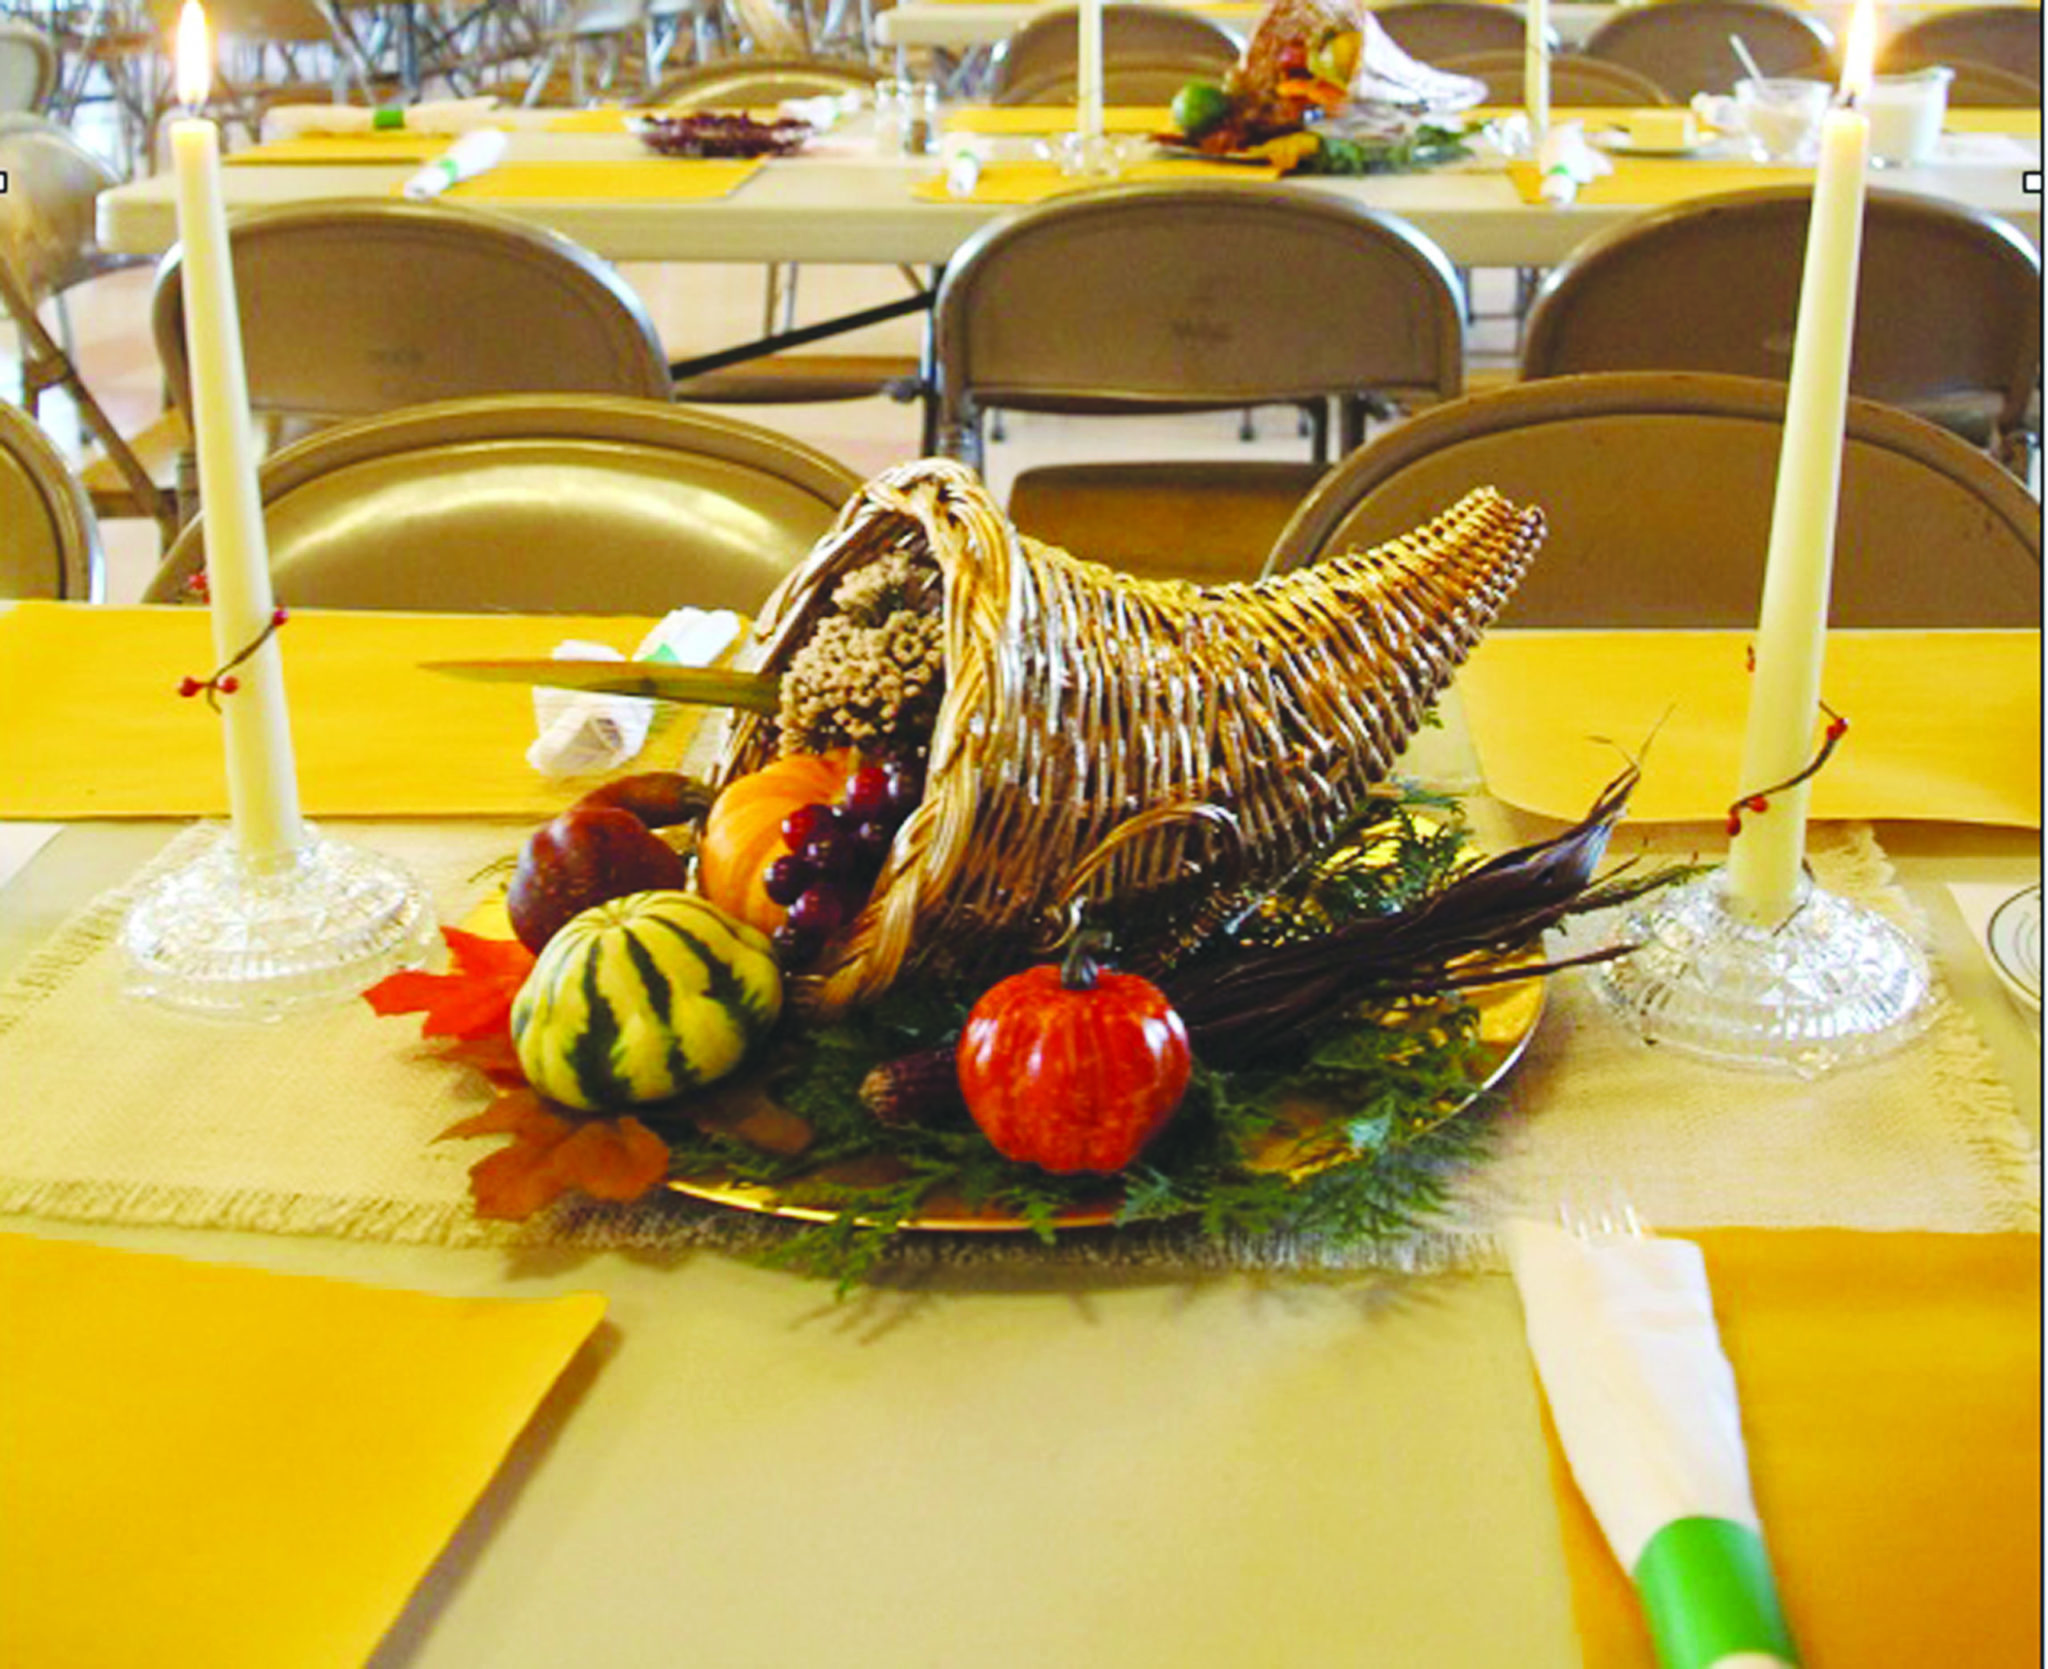 Harvest dinner slated for Nov. 10